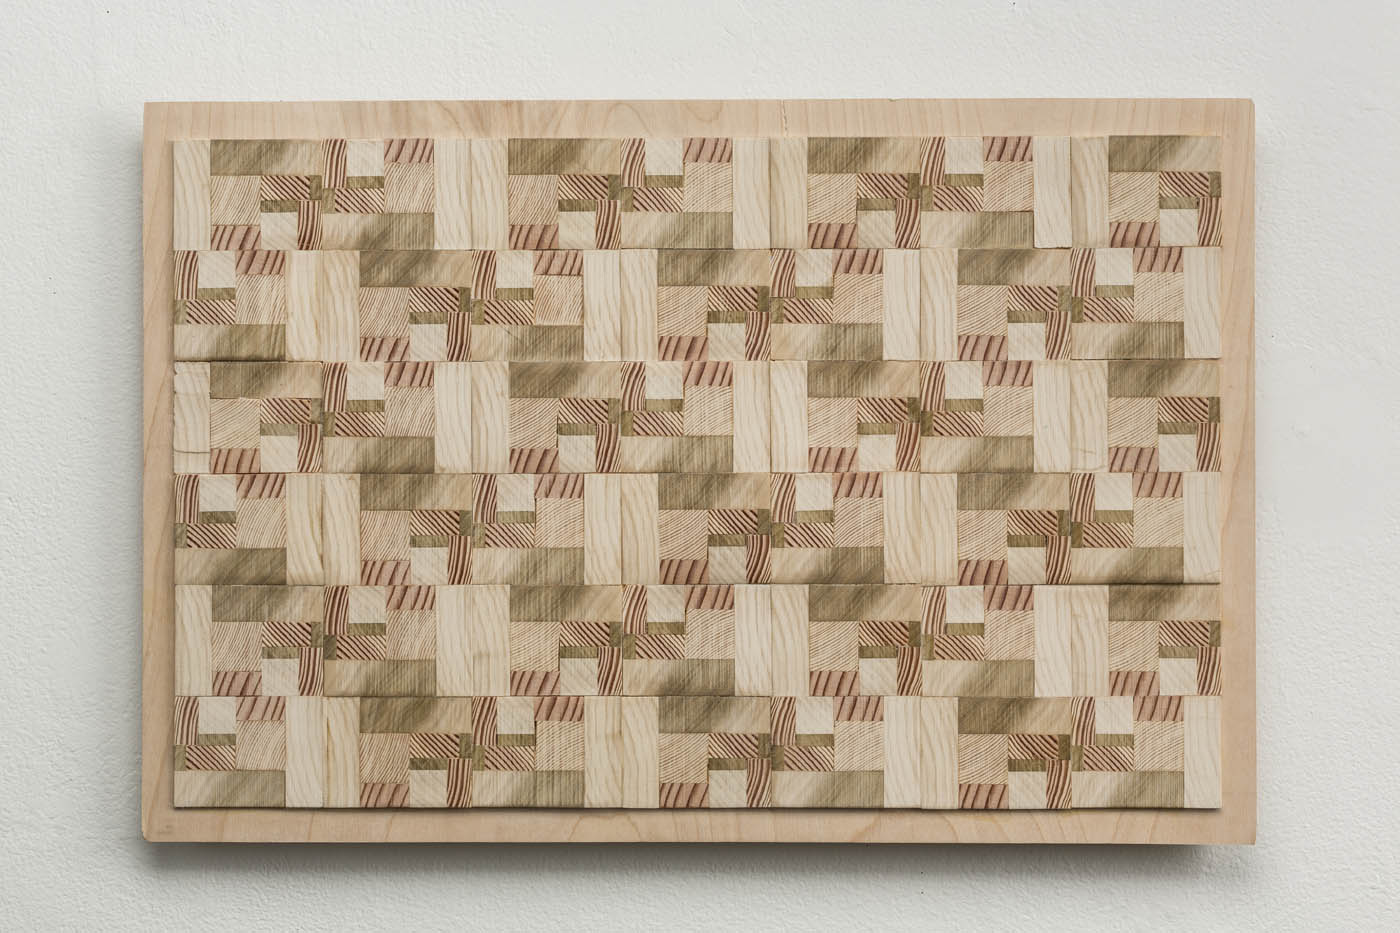 Ato K. Ribeiro  - Untitled (Wooden Quilt 1)